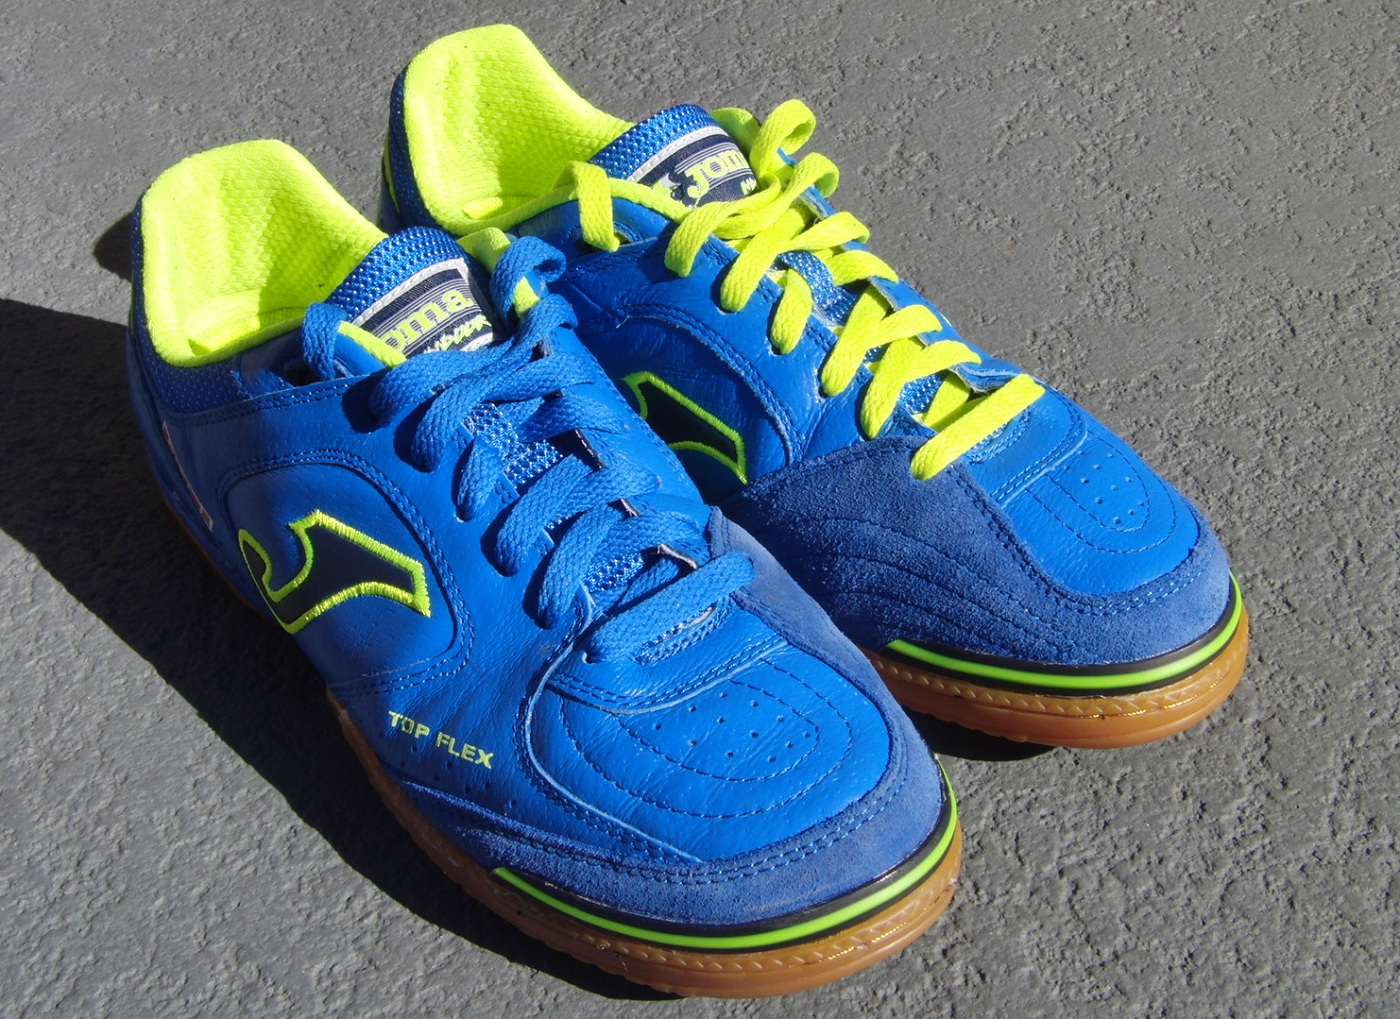 Joma Top Flex Indoor Soccer Shoes Review